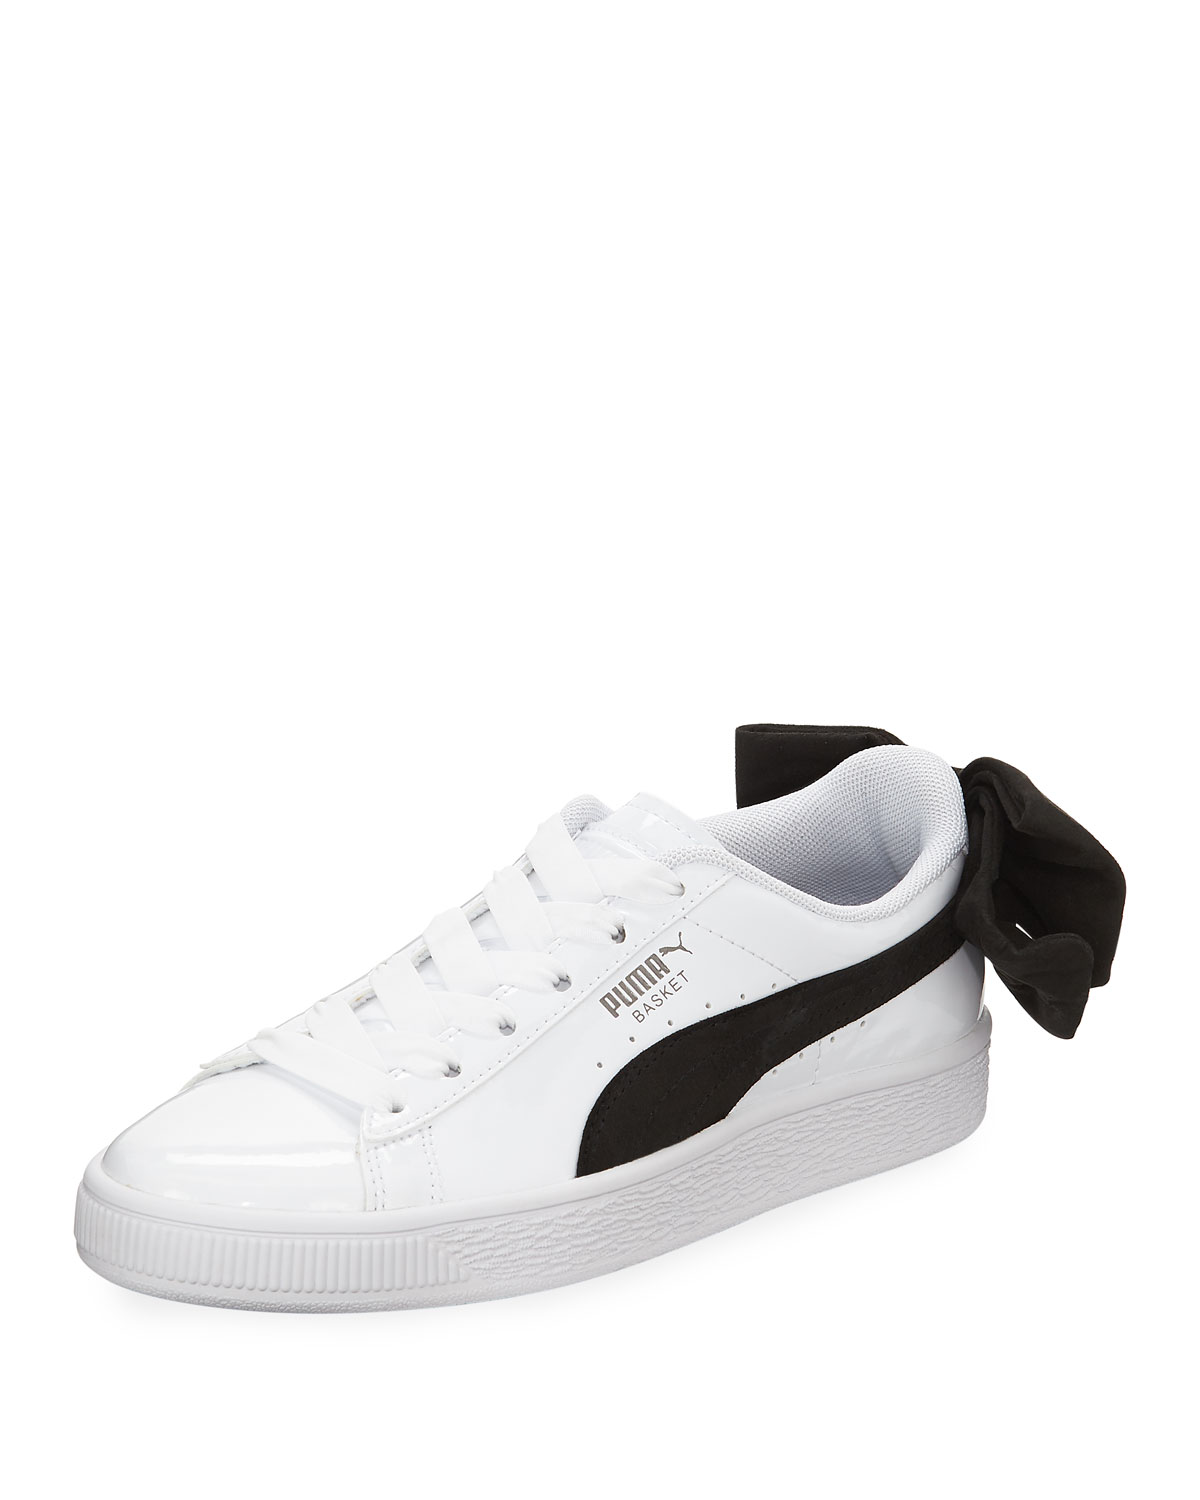 promo code 41ce4 b6013 Puma Basket Bow Two-Tone Leather Sneakers